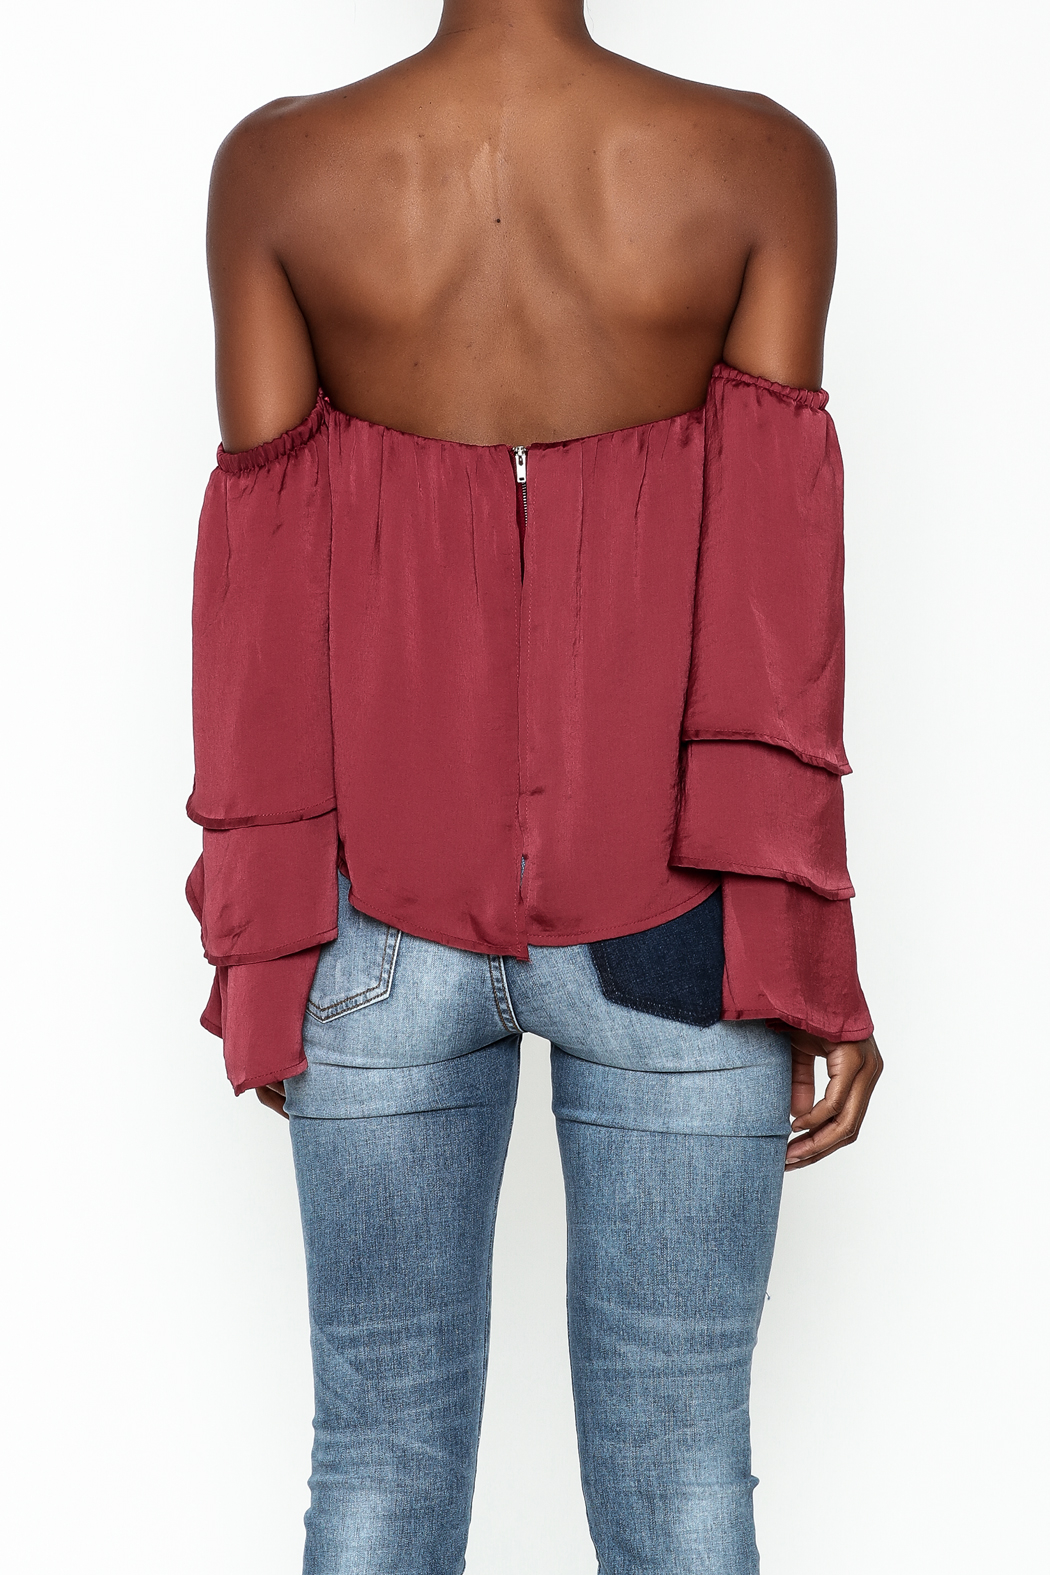 4Sienna Tiered Sleeve Satin Top - Back Cropped Image